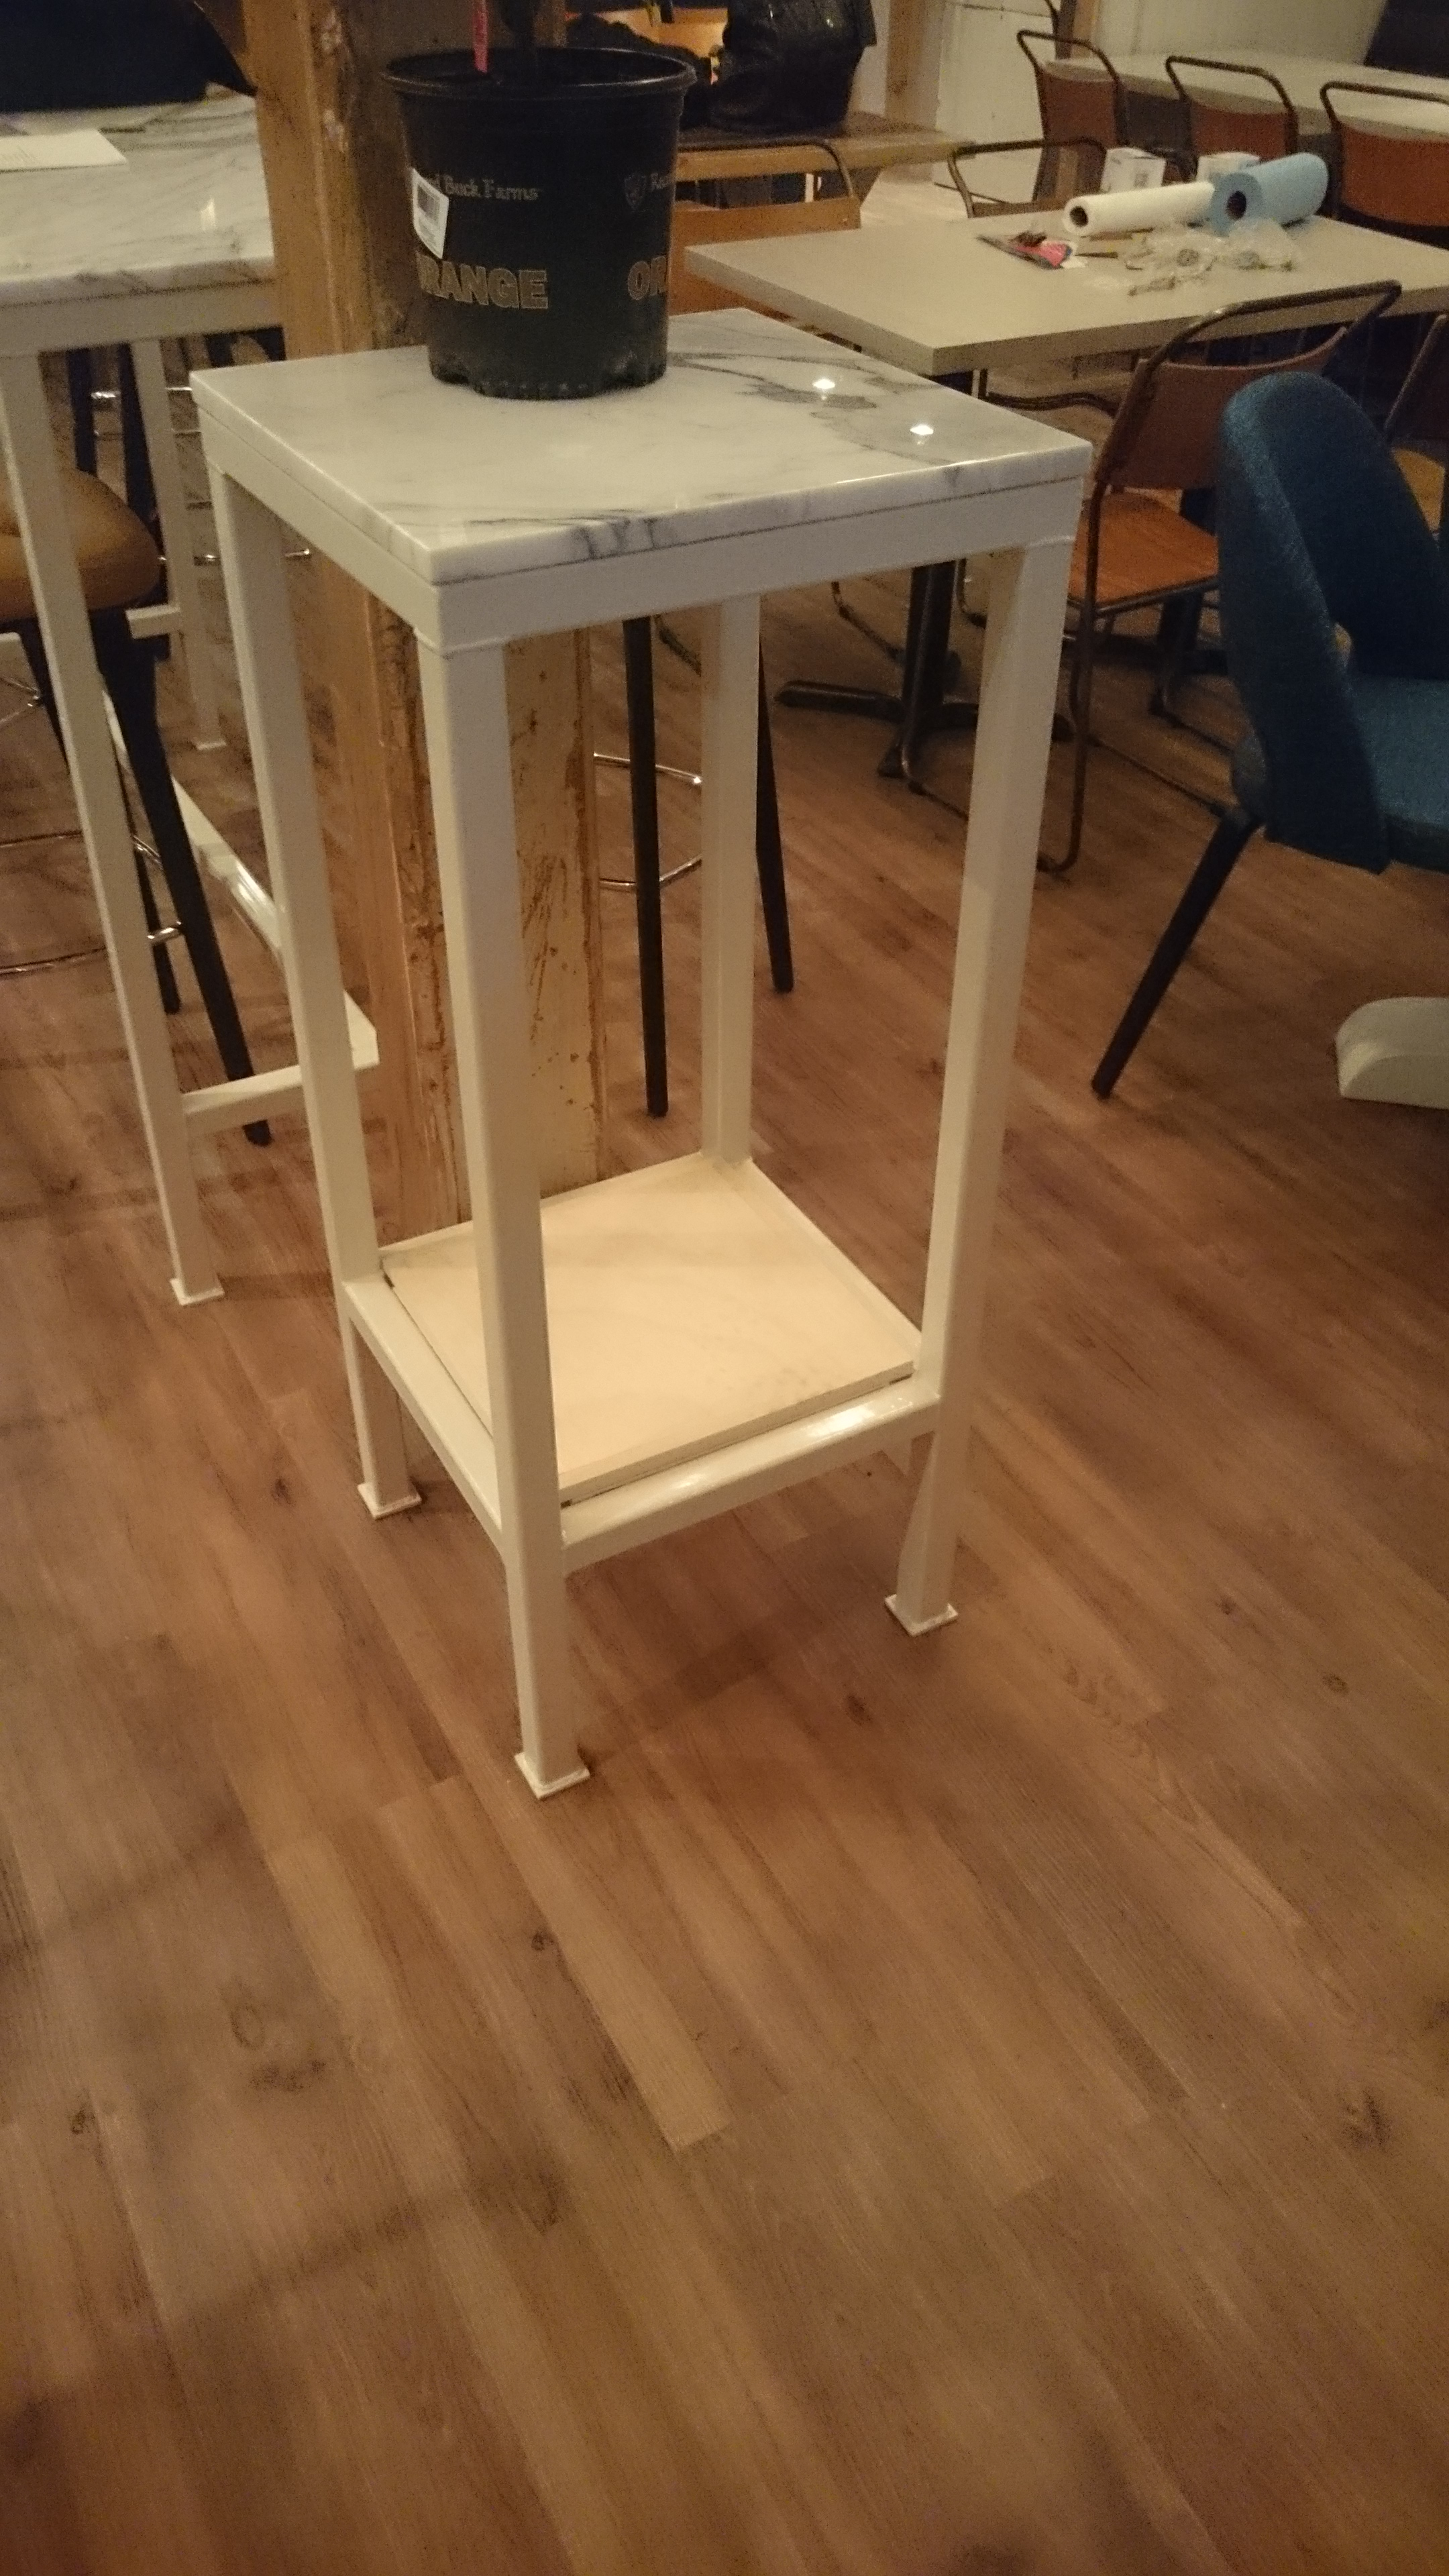 1.5x1.5 Square display stand